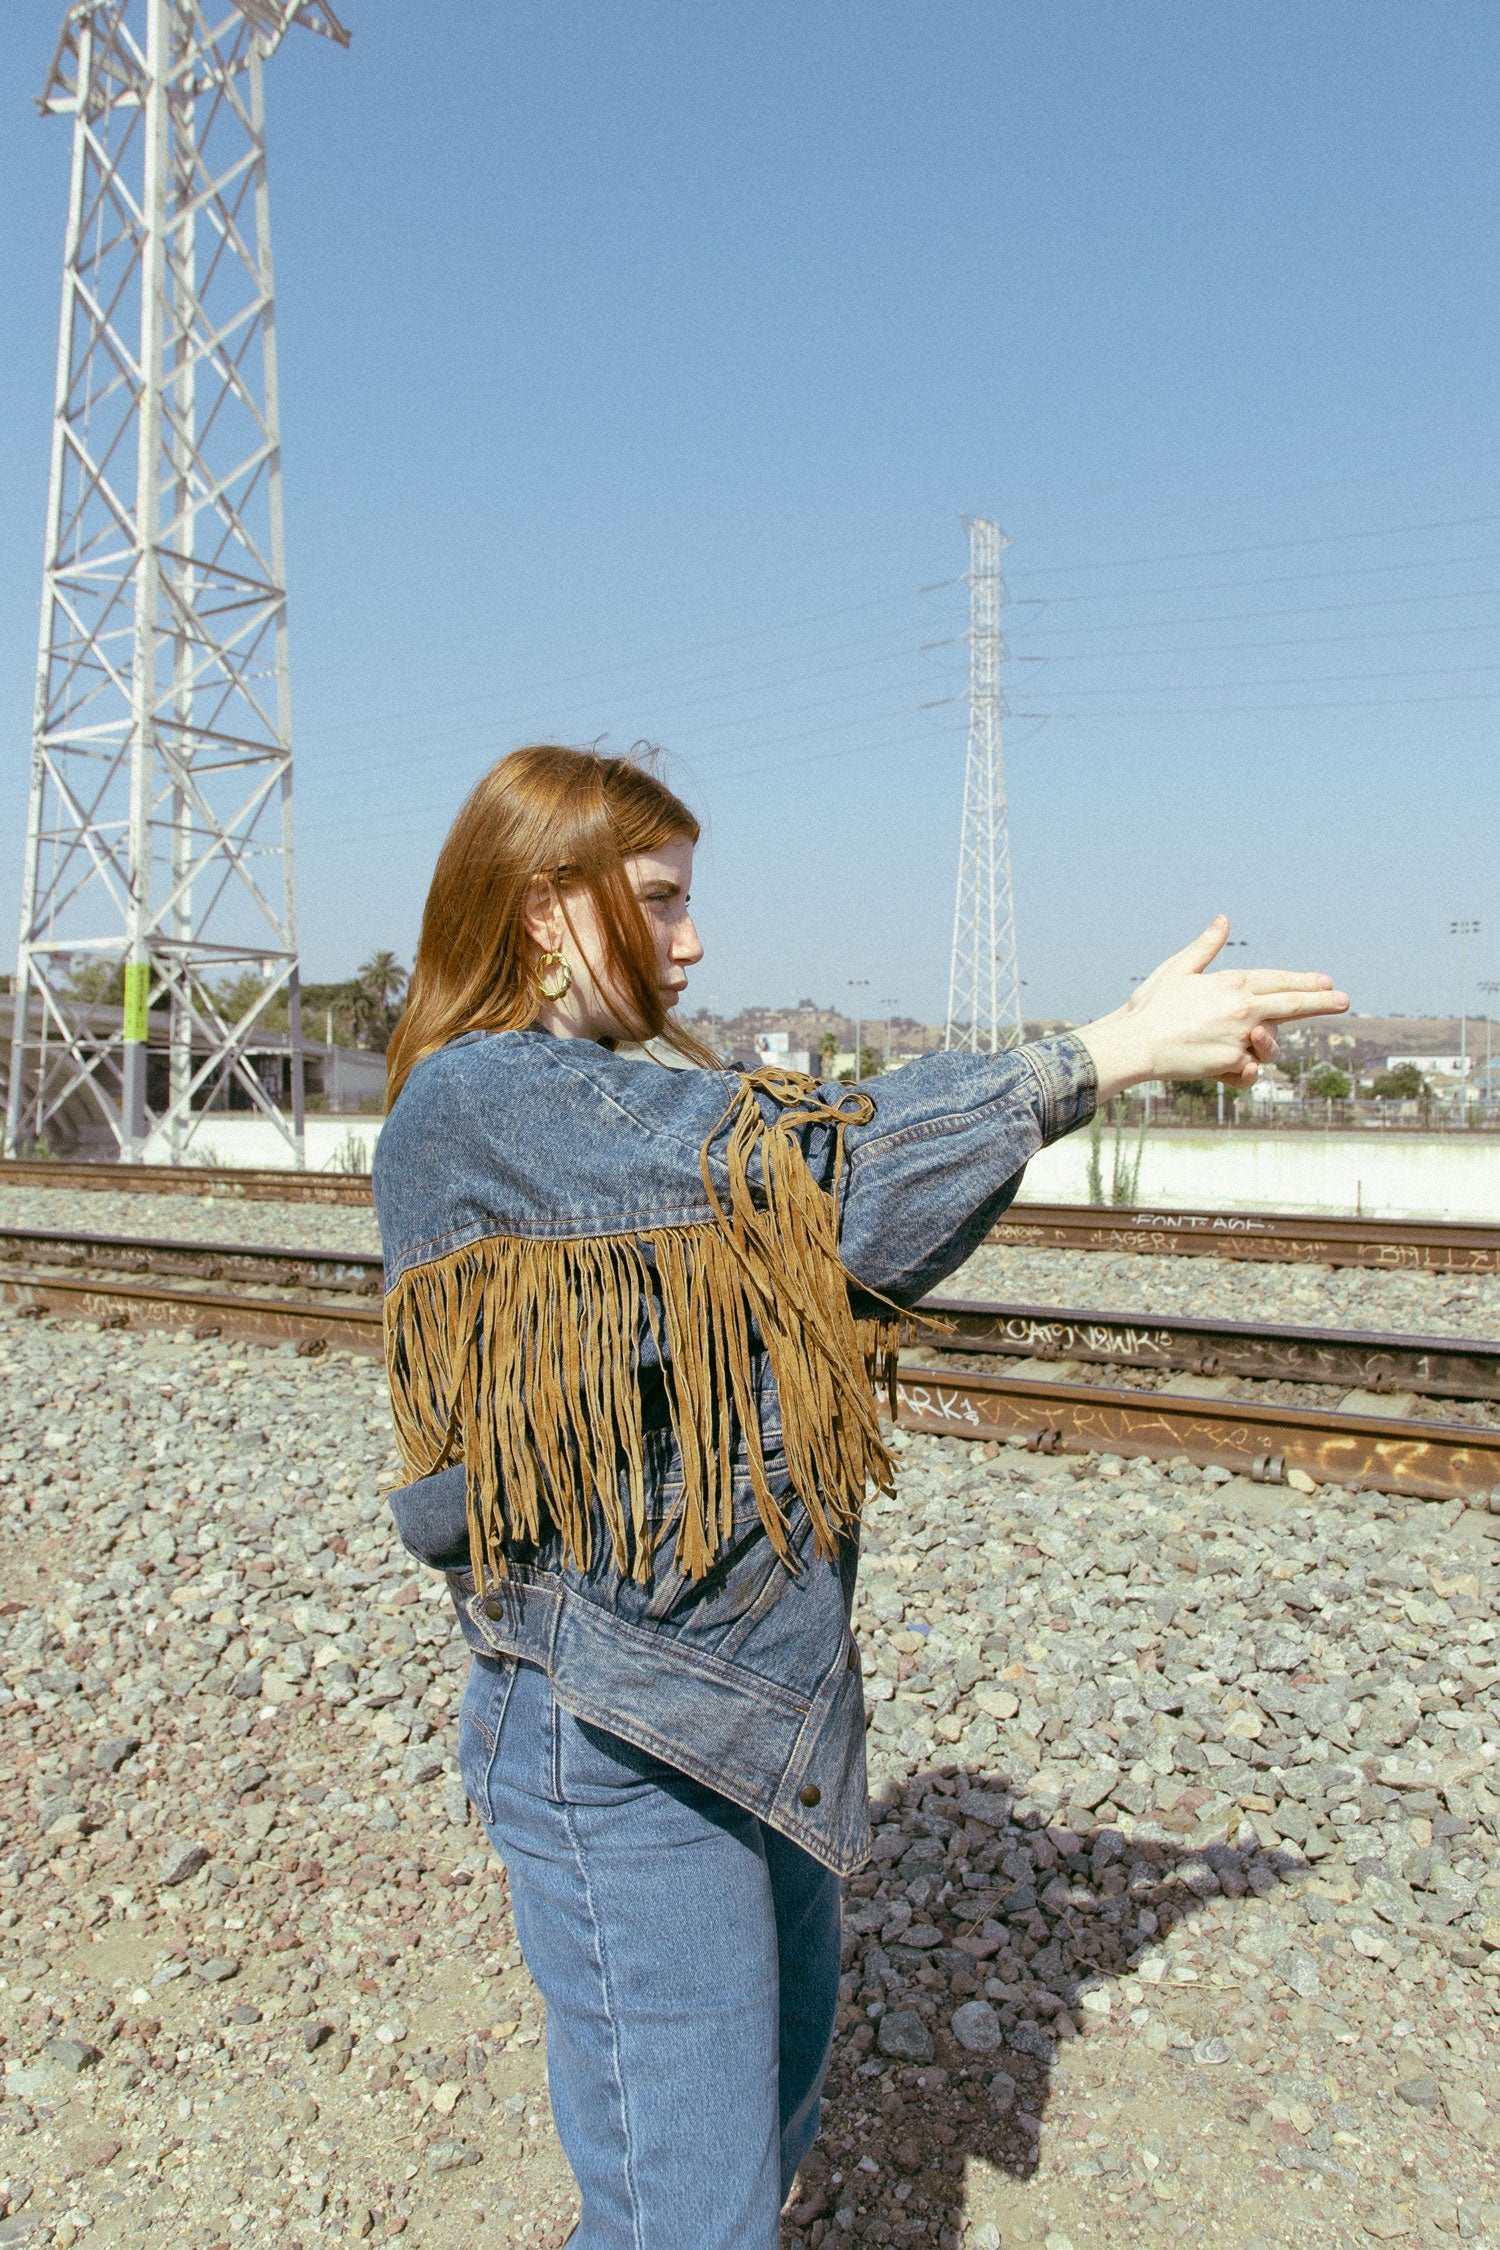 Woman making a hand gun sign in front of train tracks.  Wearing vintage 90s jean jacket with suede fringe.